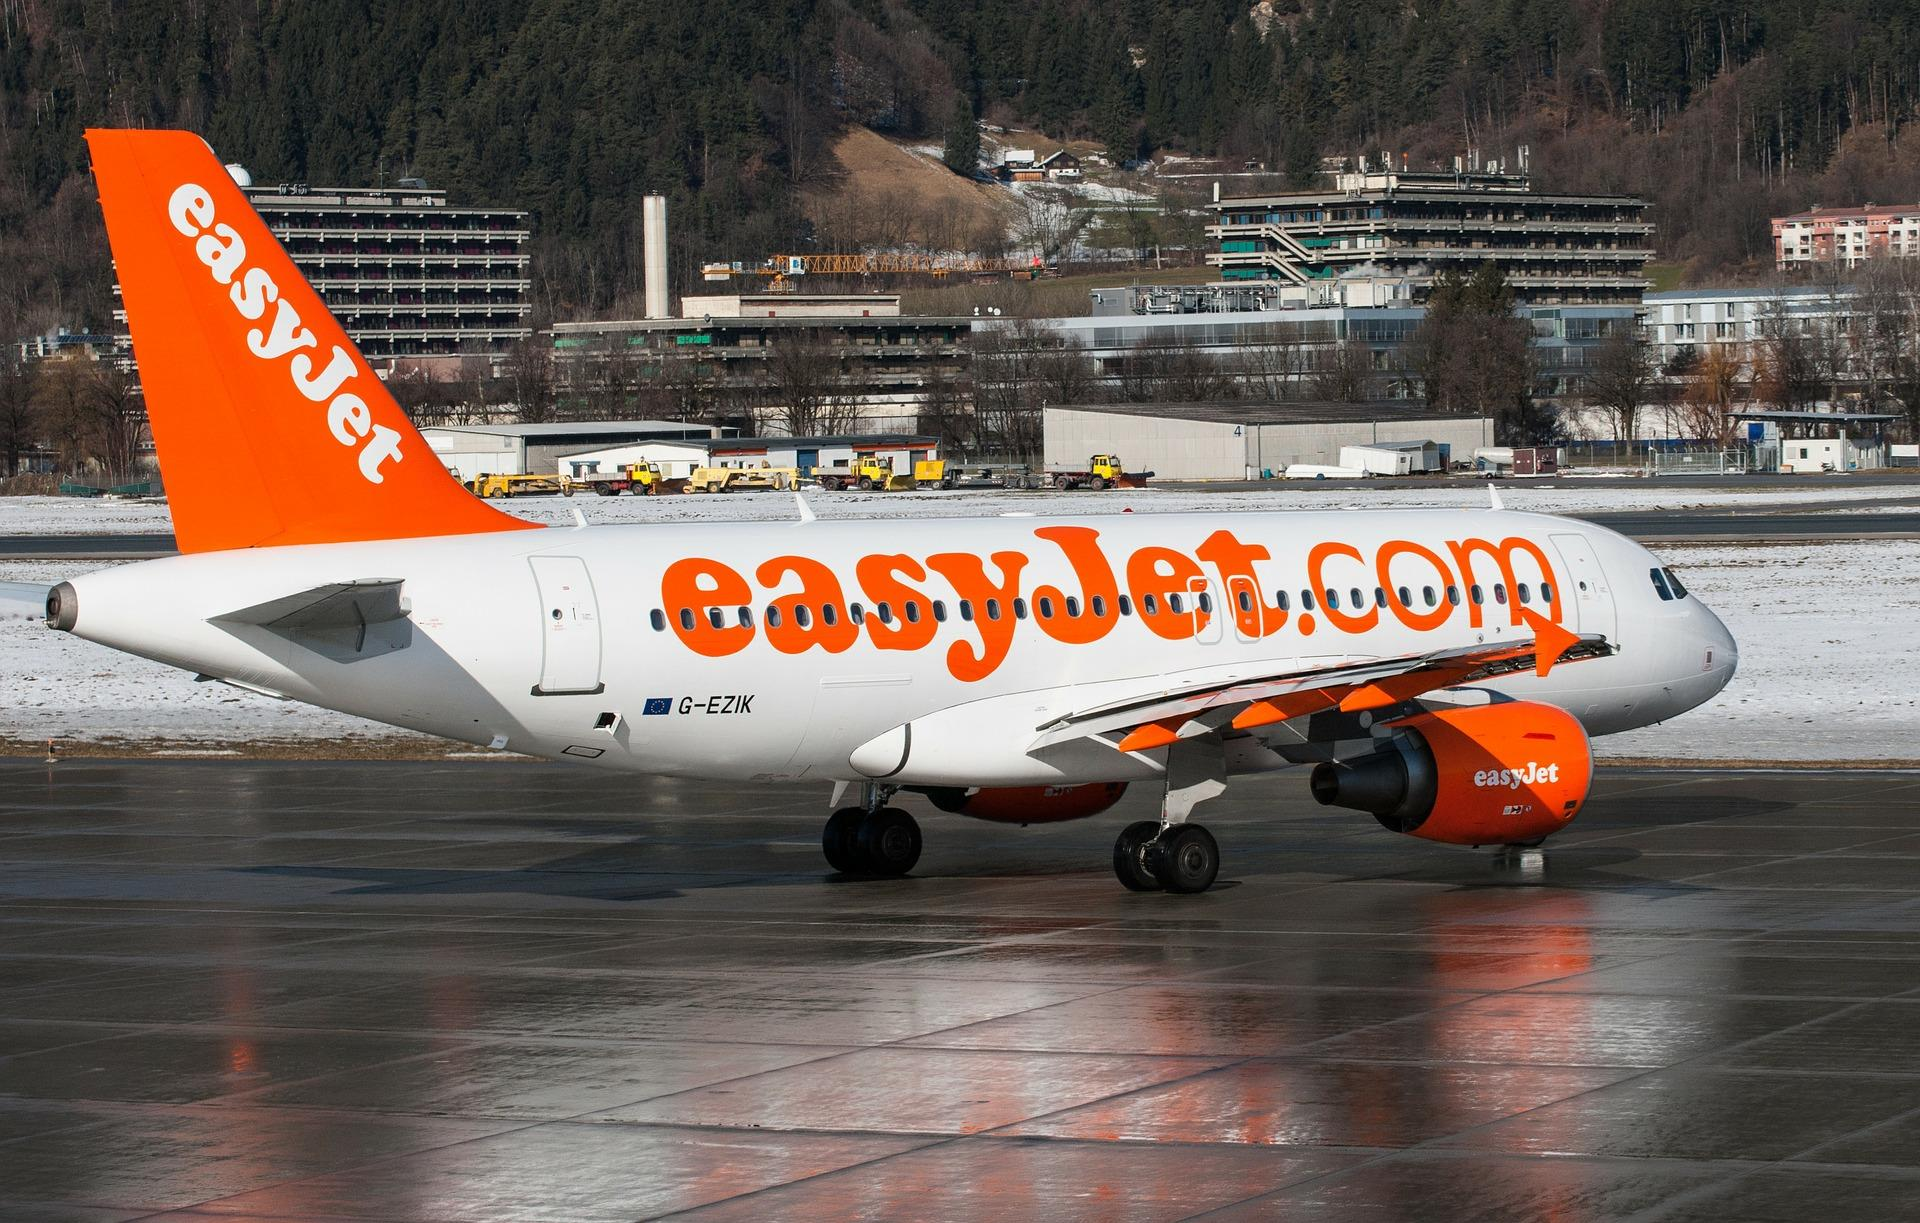 easyjet - photo #39